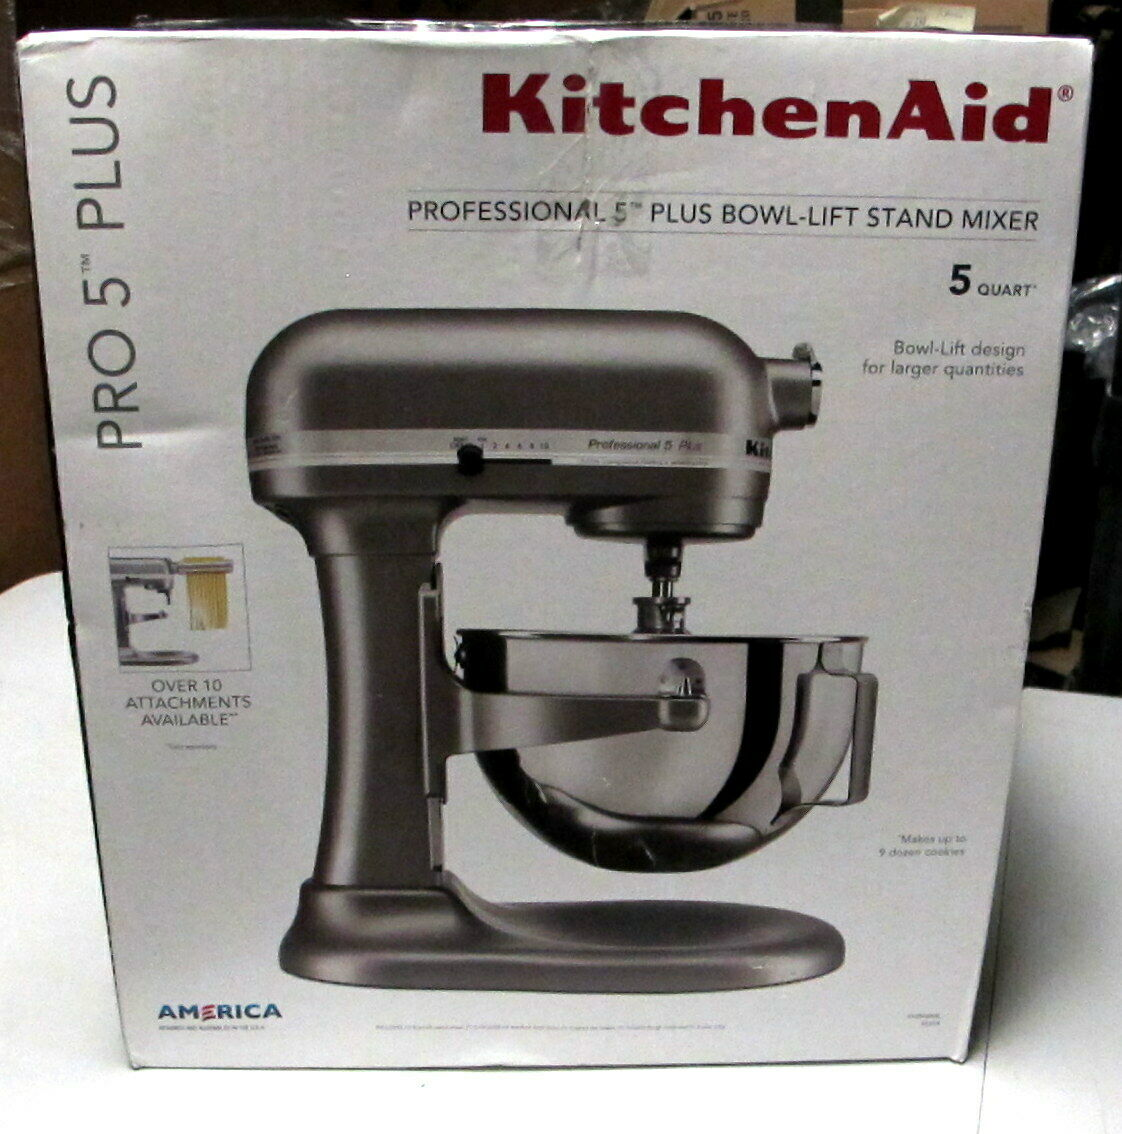 KitchenAid Pro 5 plus 5-Qt bol-Lift Stand Mixer Argent KV25G0XSL Unit 1